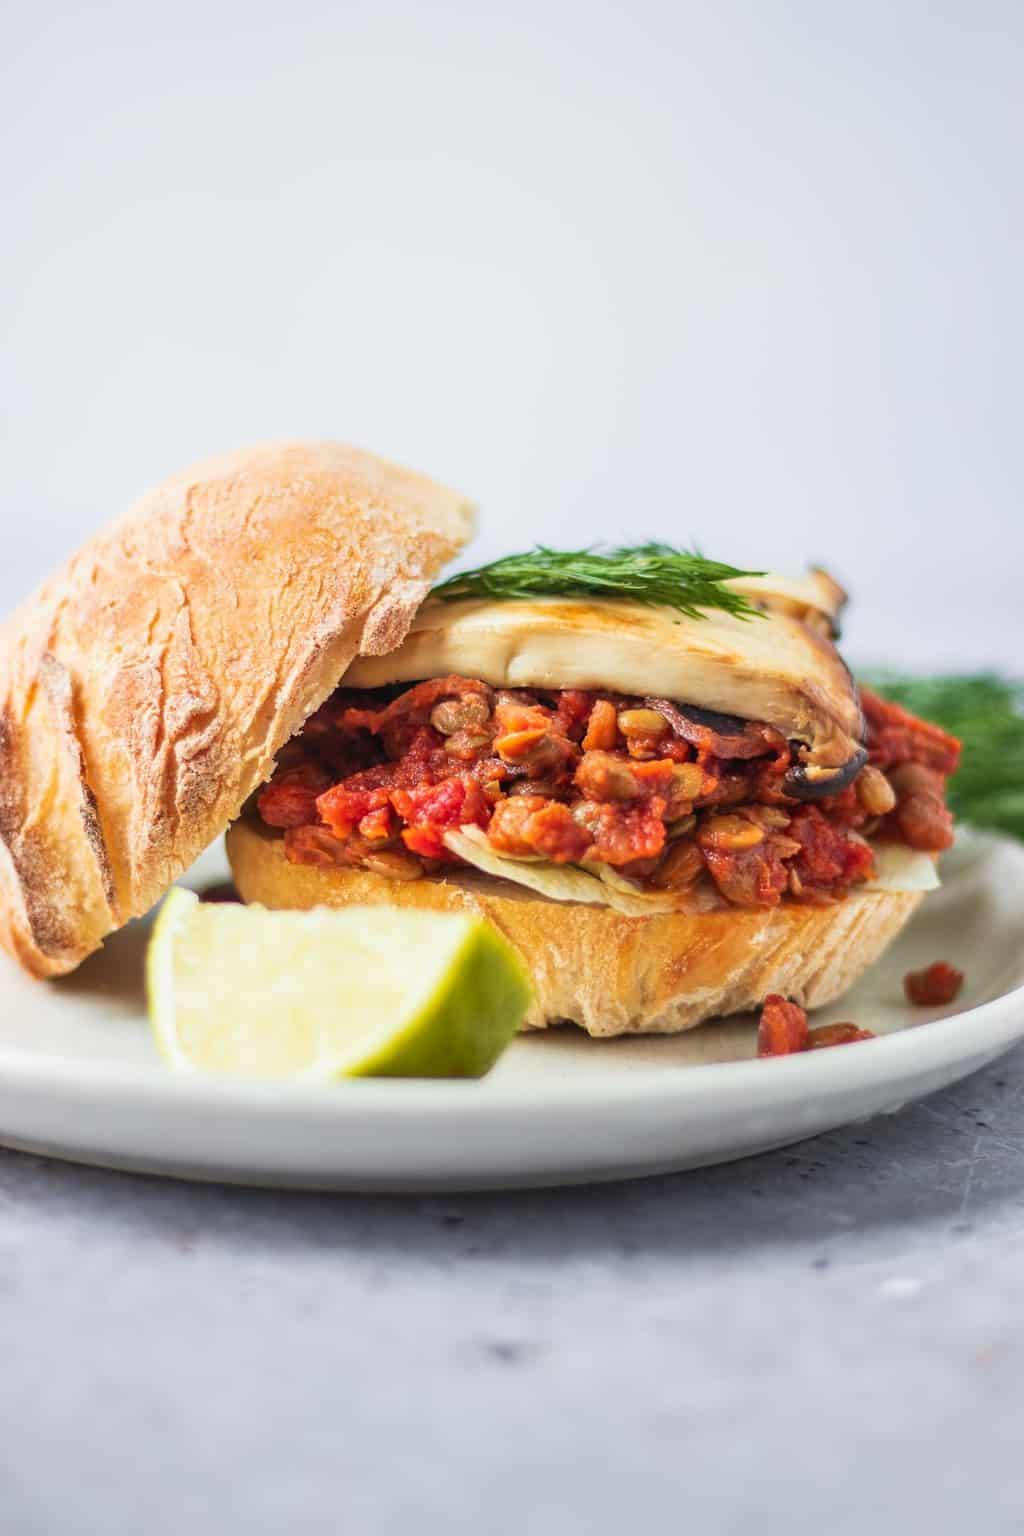 Vegan sloppy joes gluten-free